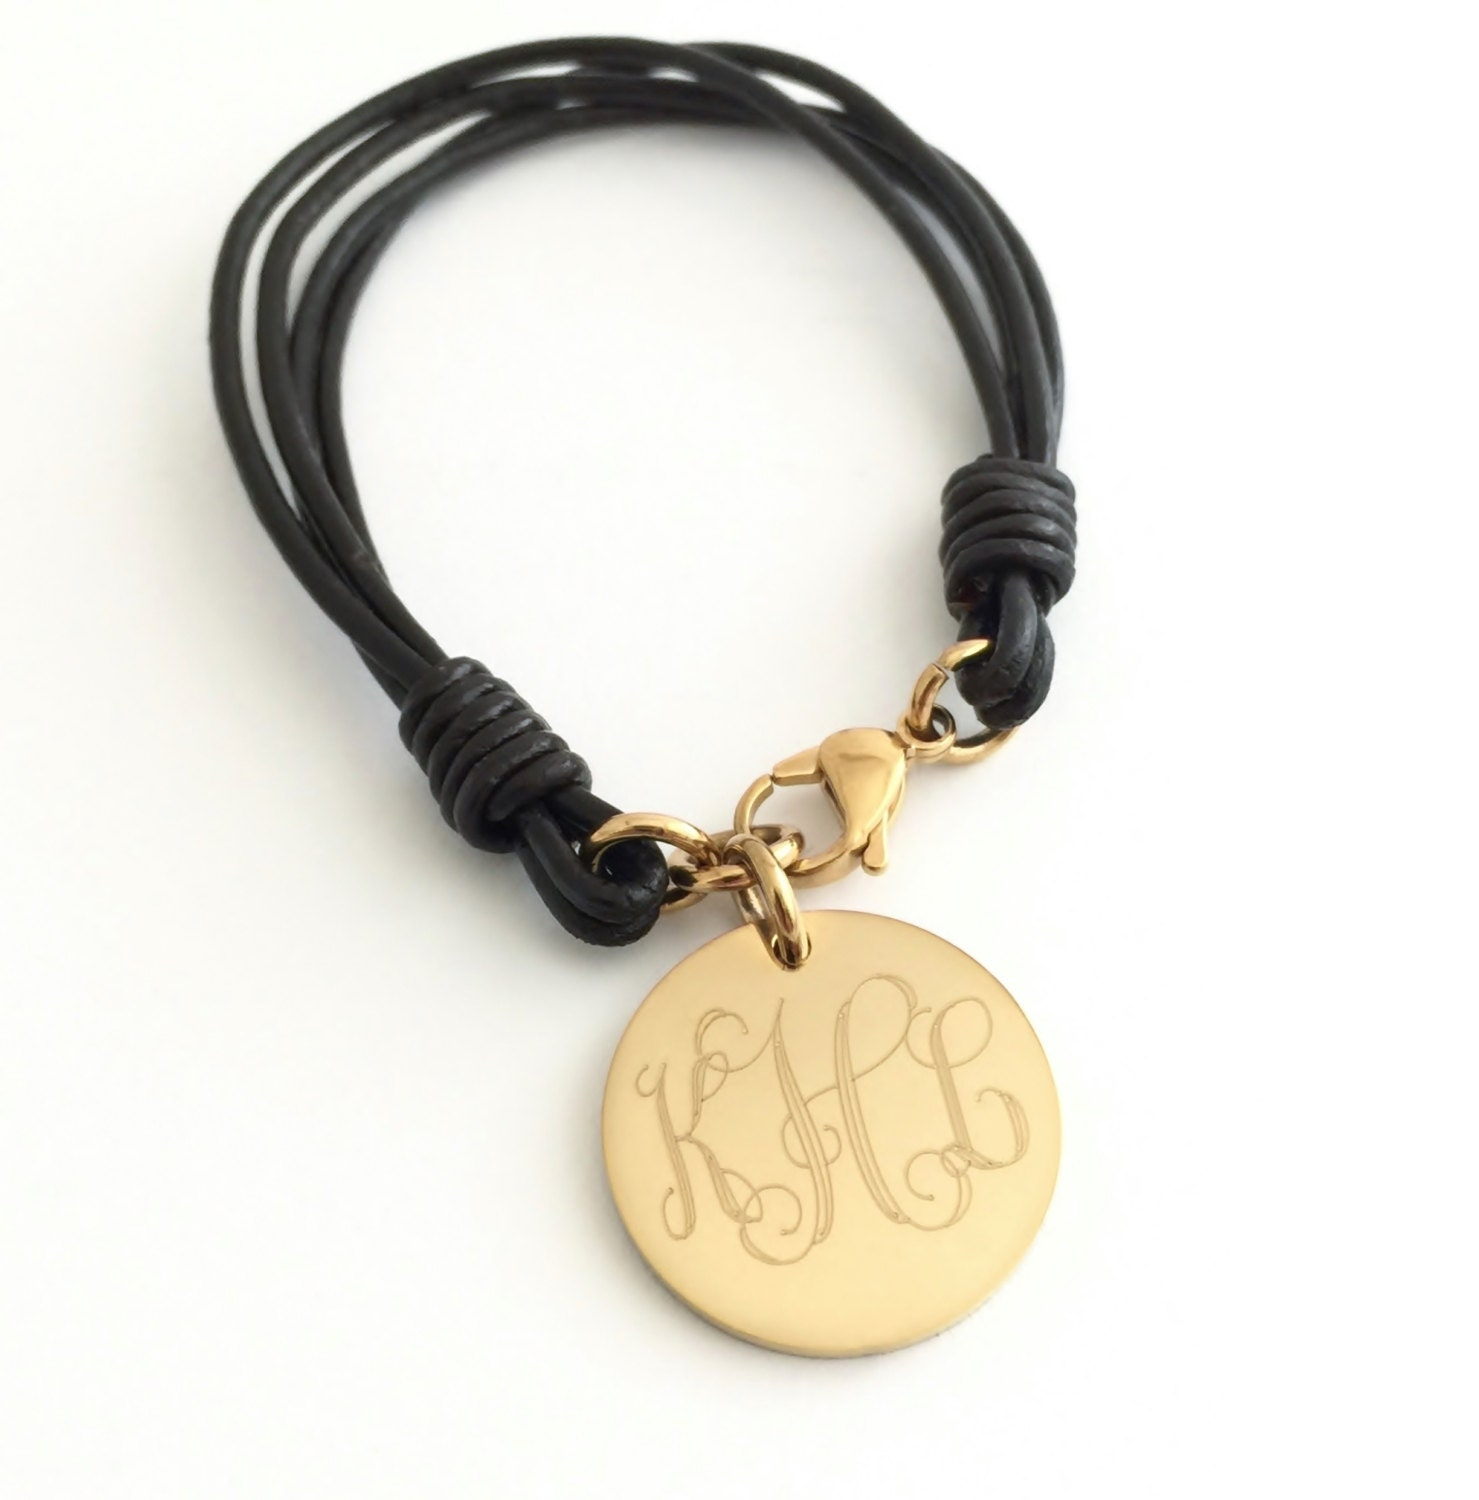 Leather Bracelet With Charms: Personalized Leather Bracelets For Women Monogram Leather